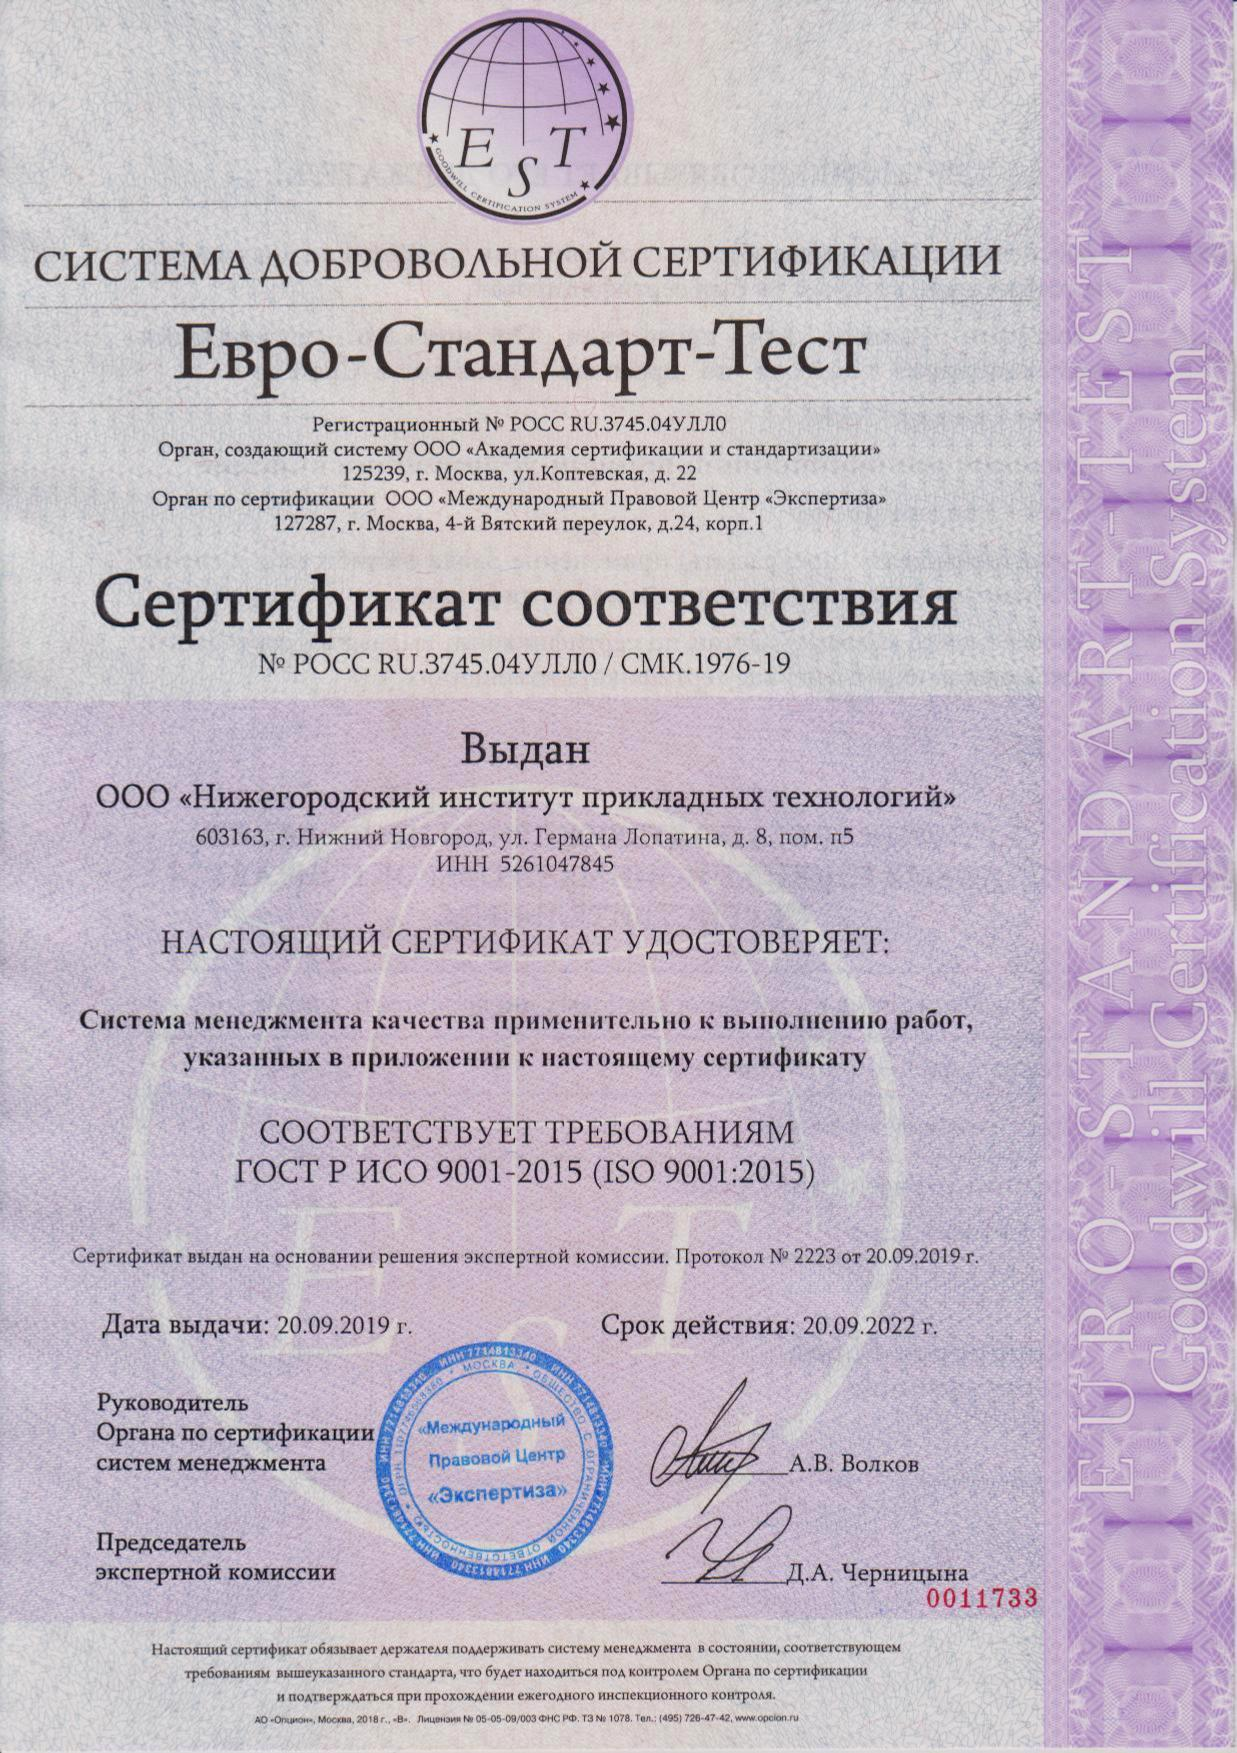 Certificate of compliance№ POCC RU.3745.04УЛЛ0 / СМК.491-13